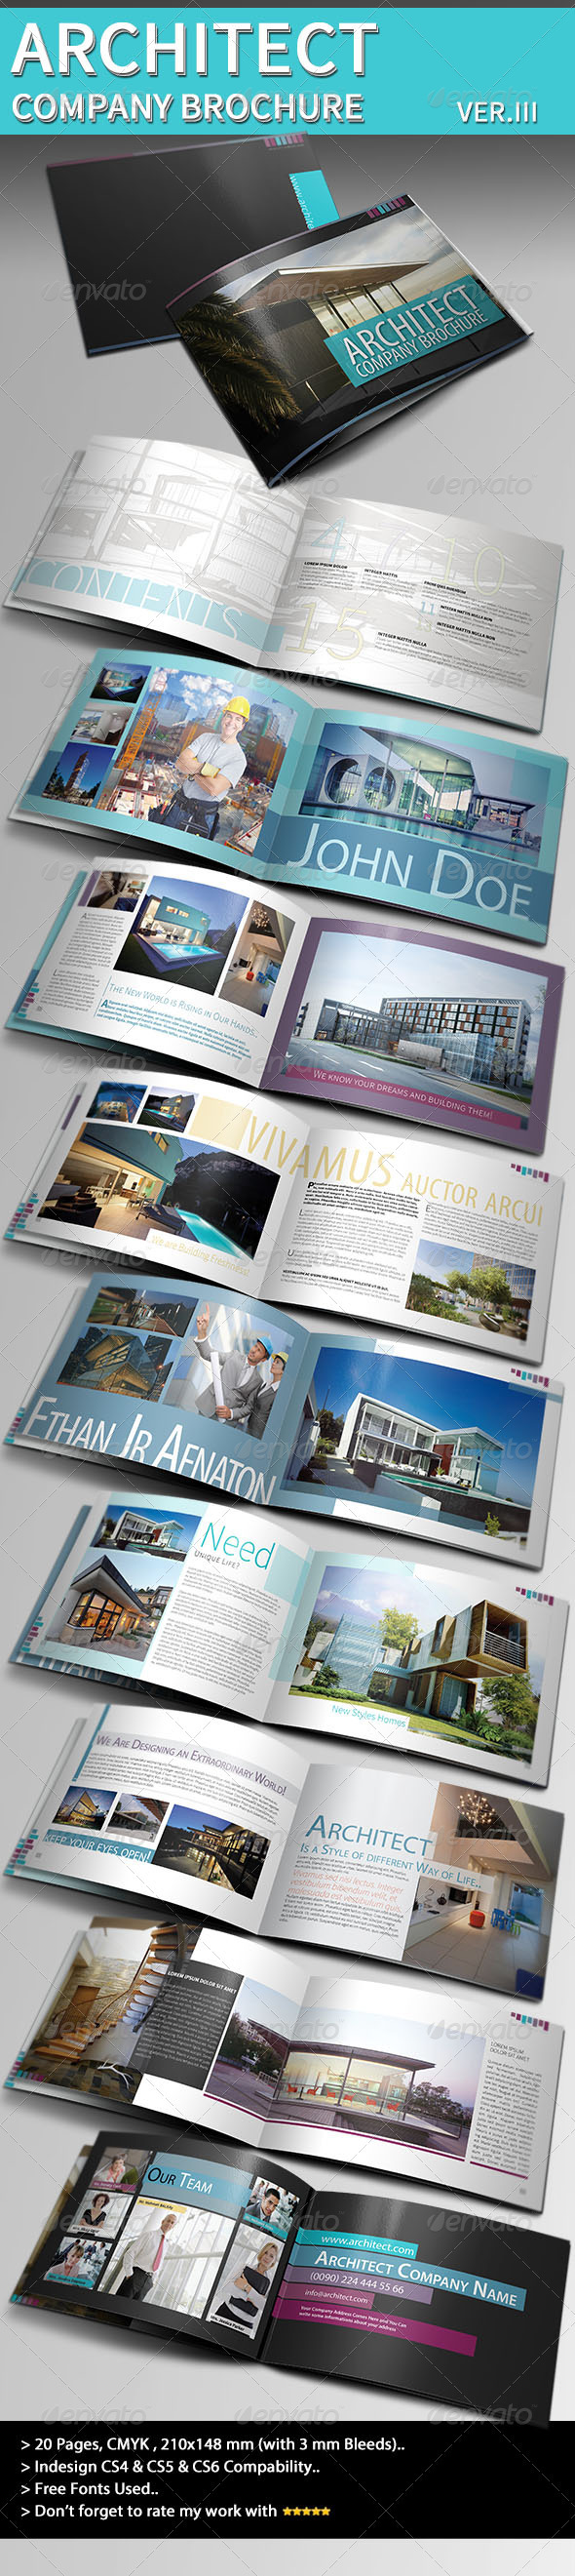 25 Really Beautiful Brochure Designs amp Templates For